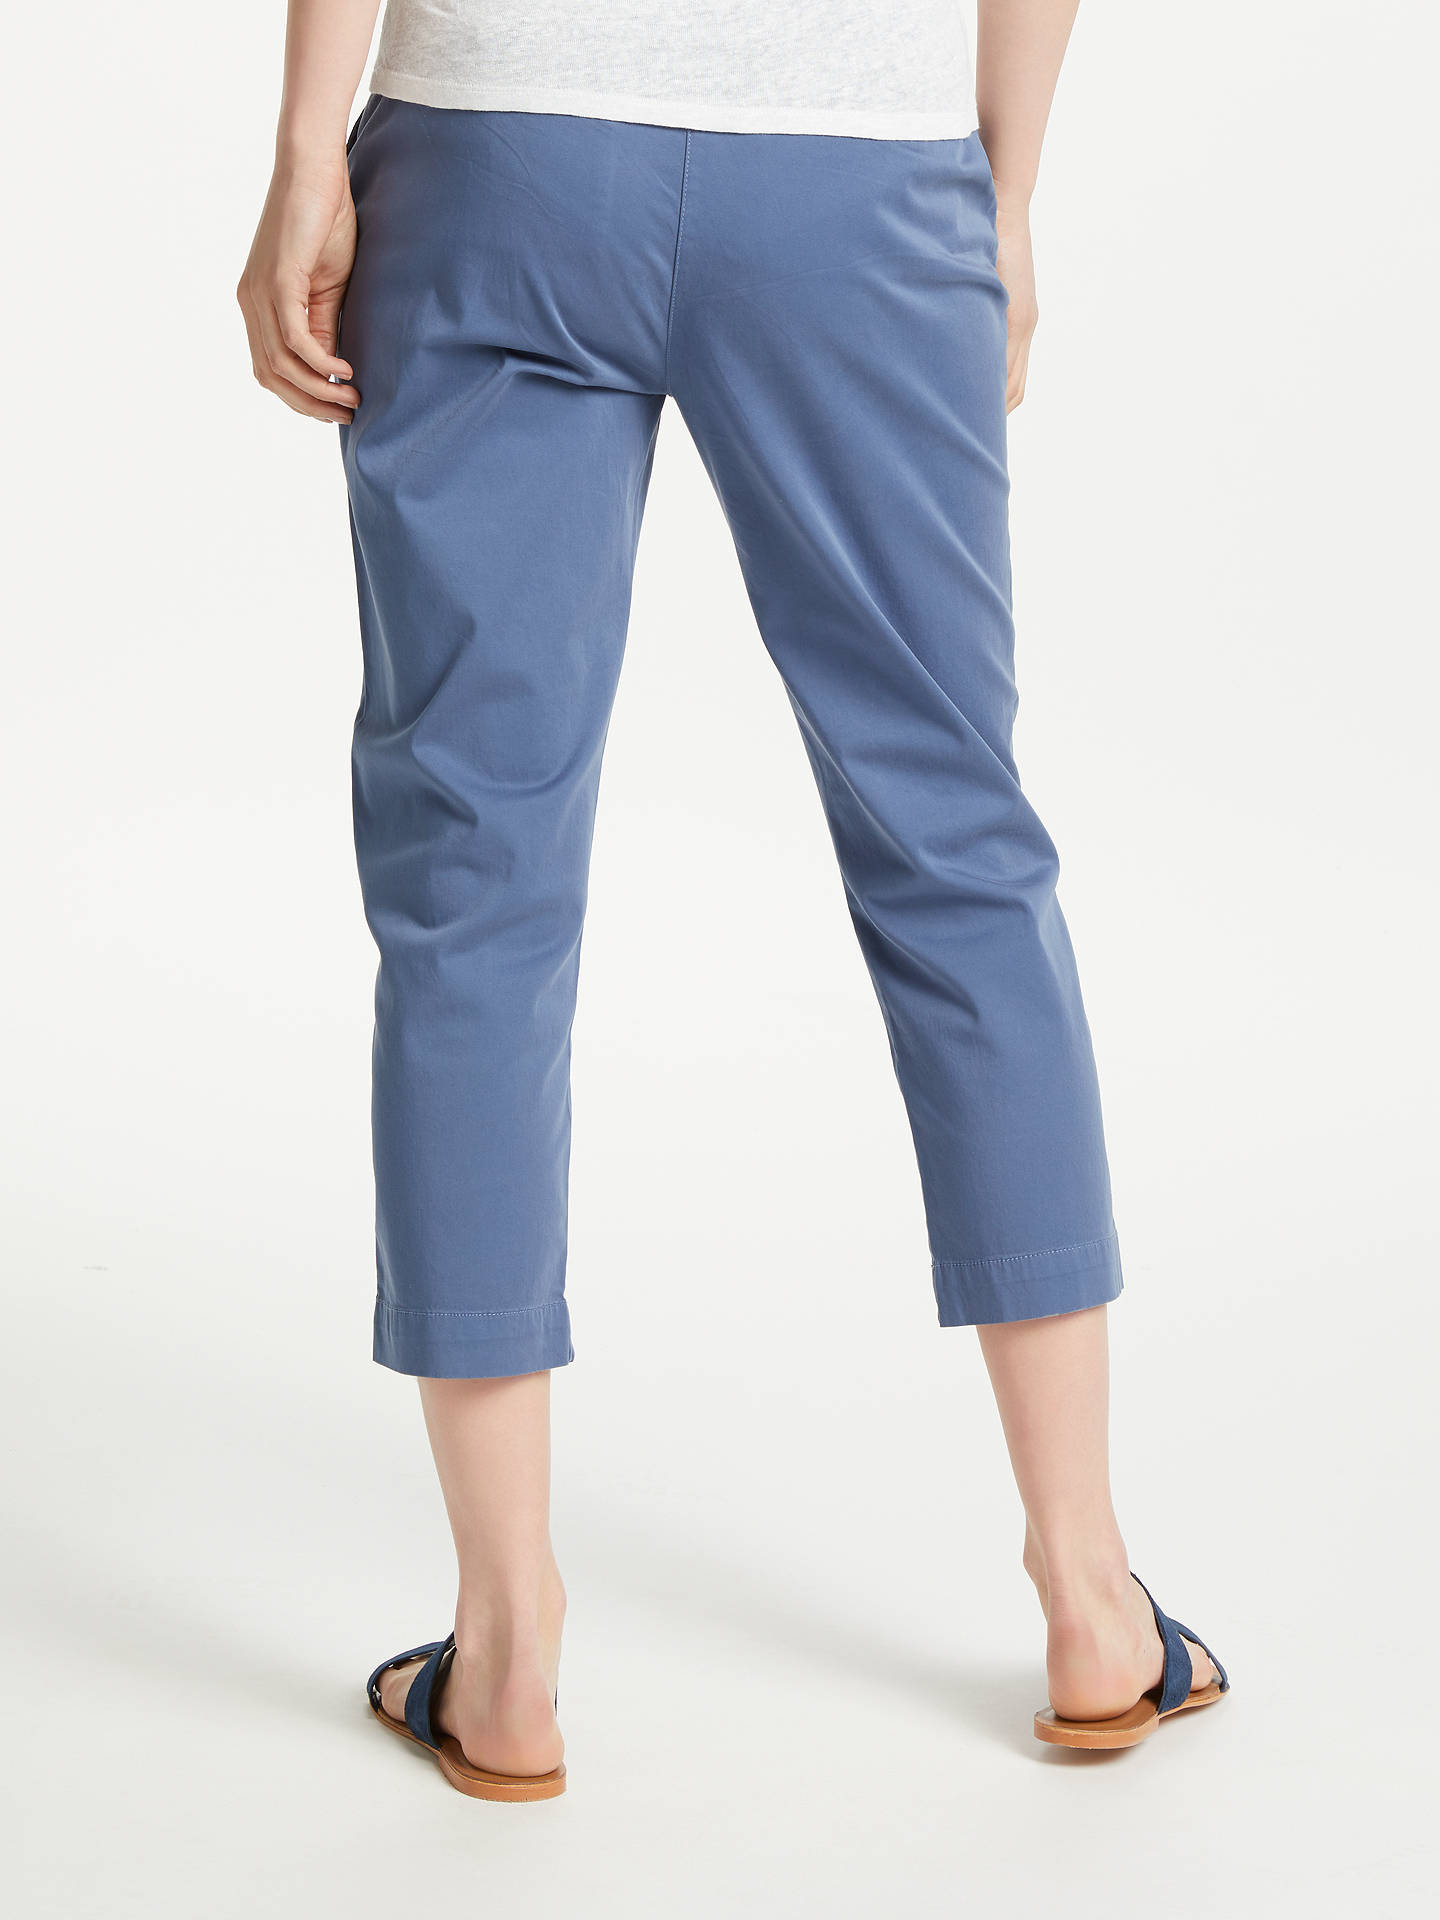 BuyJohn Lewis & Partners Crop Chinos, Coastal Fiord, 8 Online at johnlewis.com